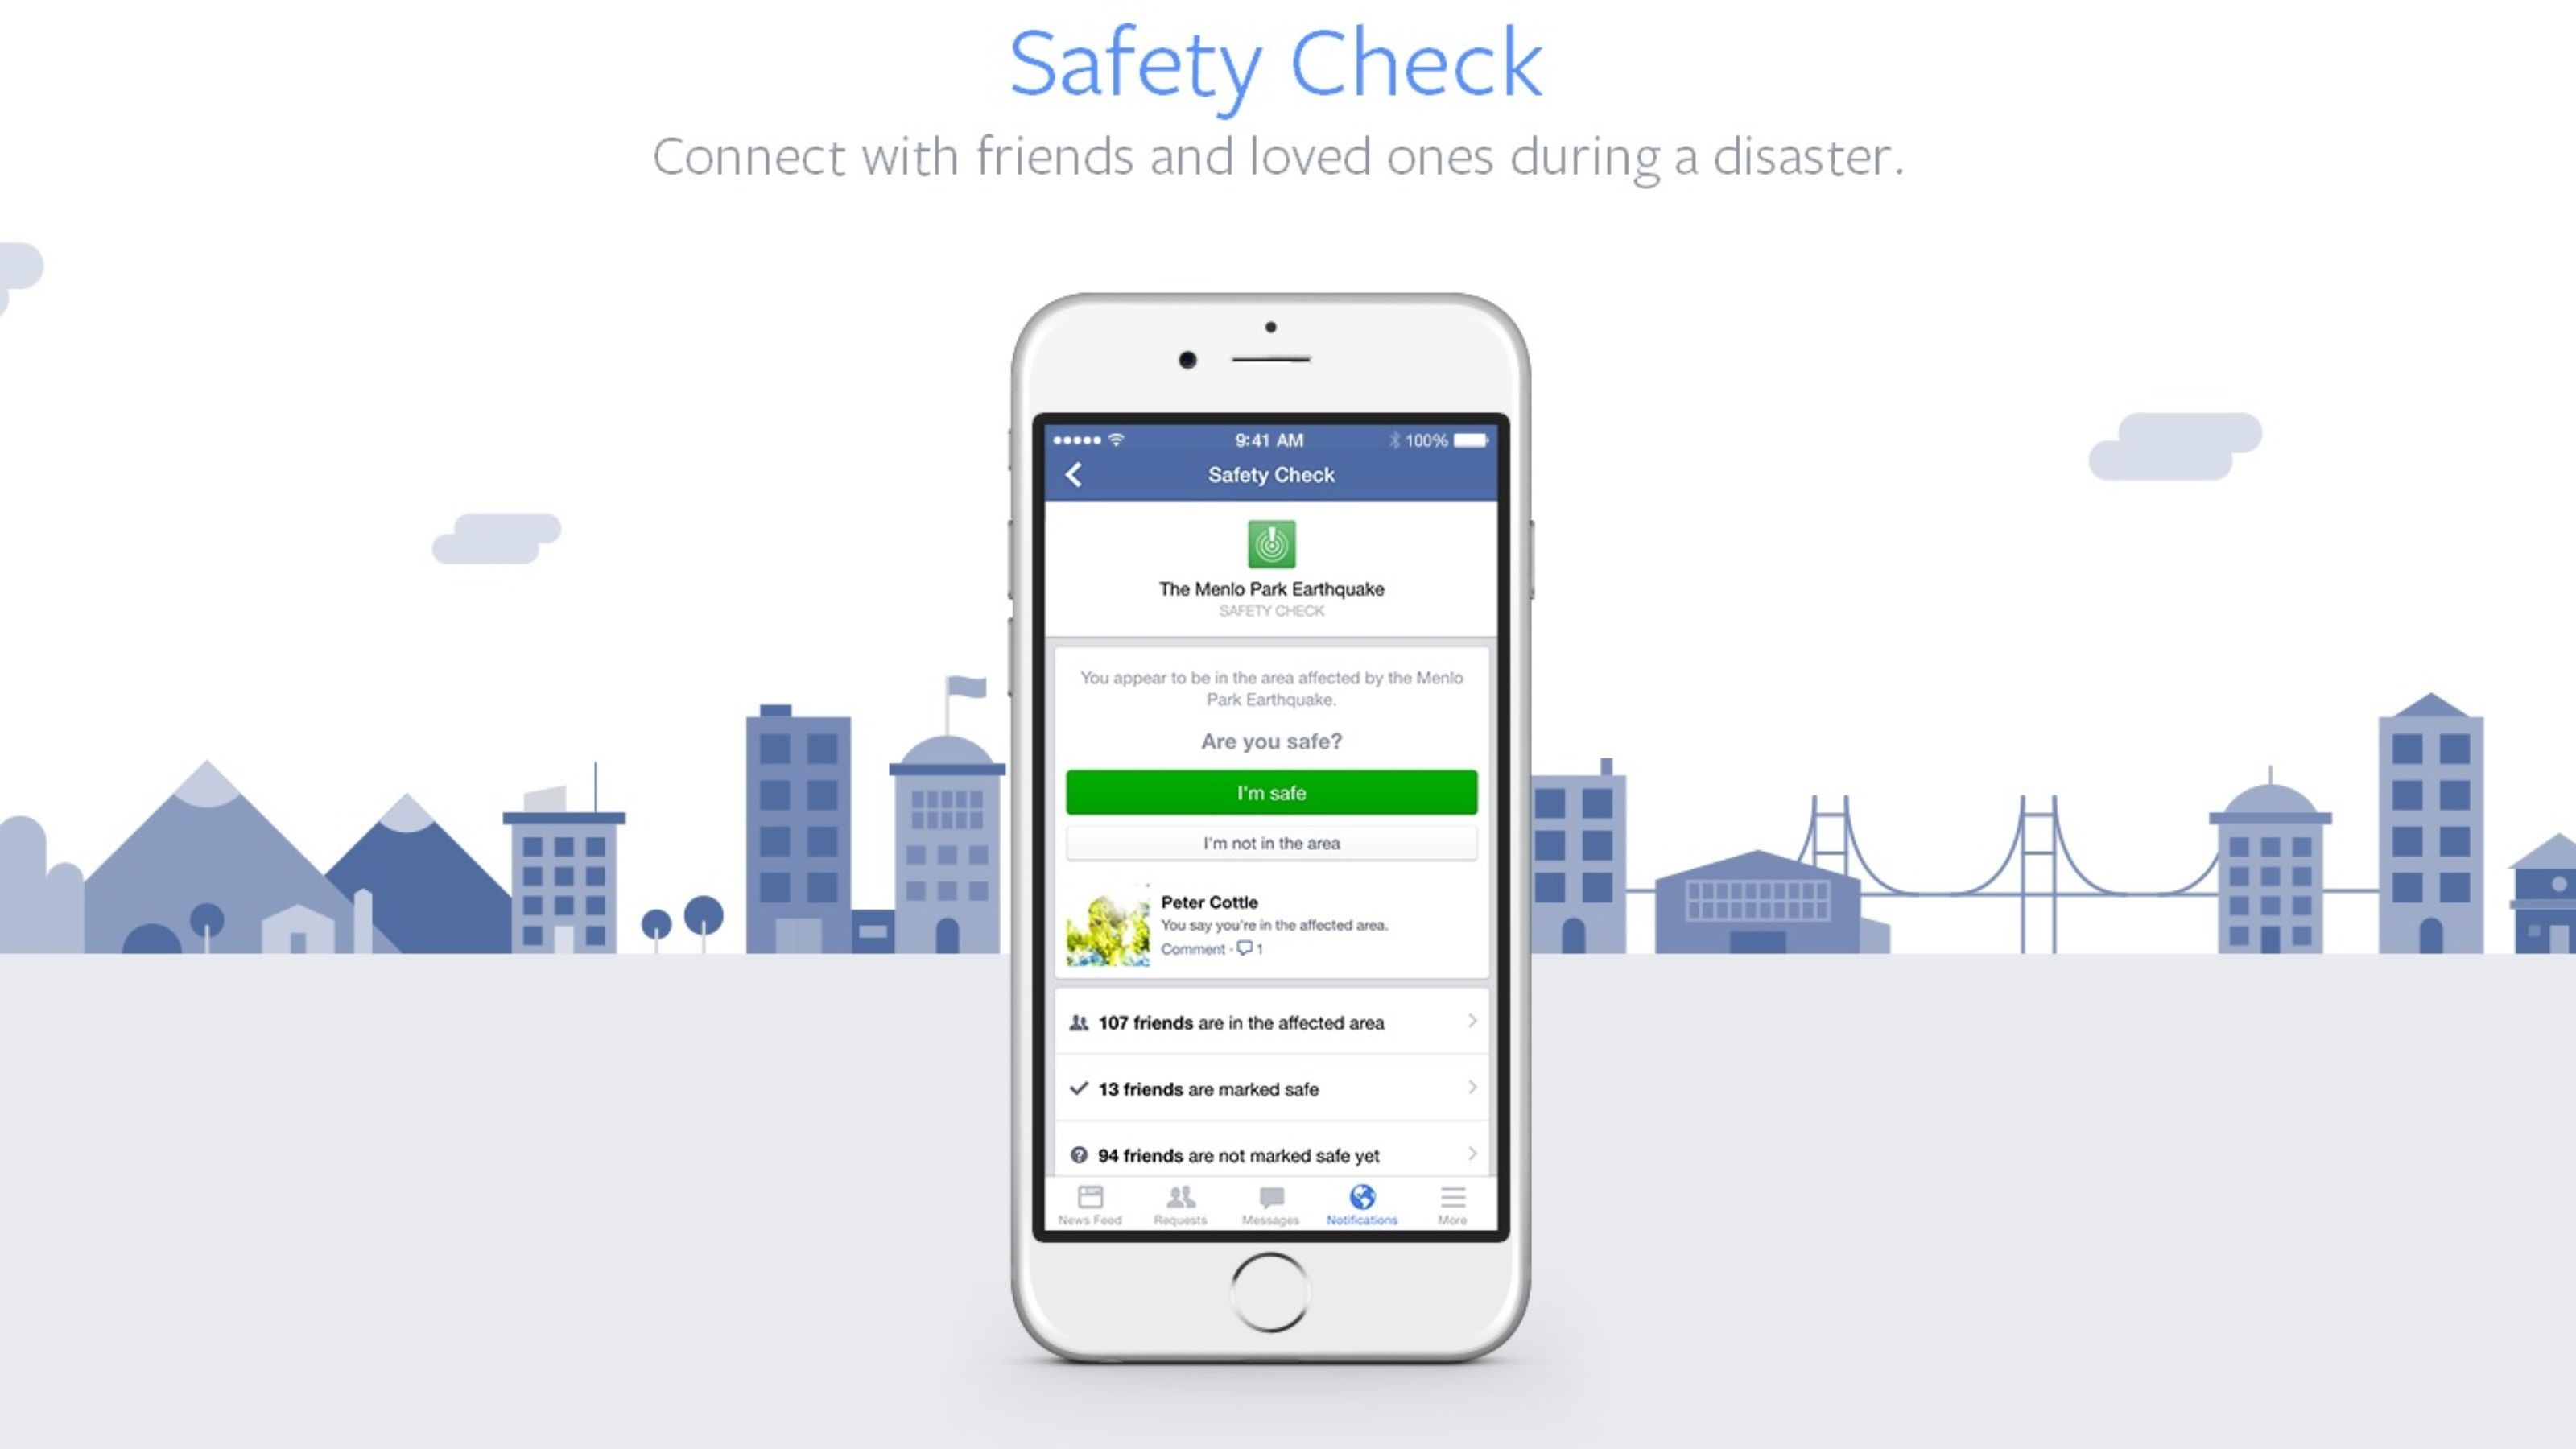 Facebook 'Safety Check' helps during natural disasters